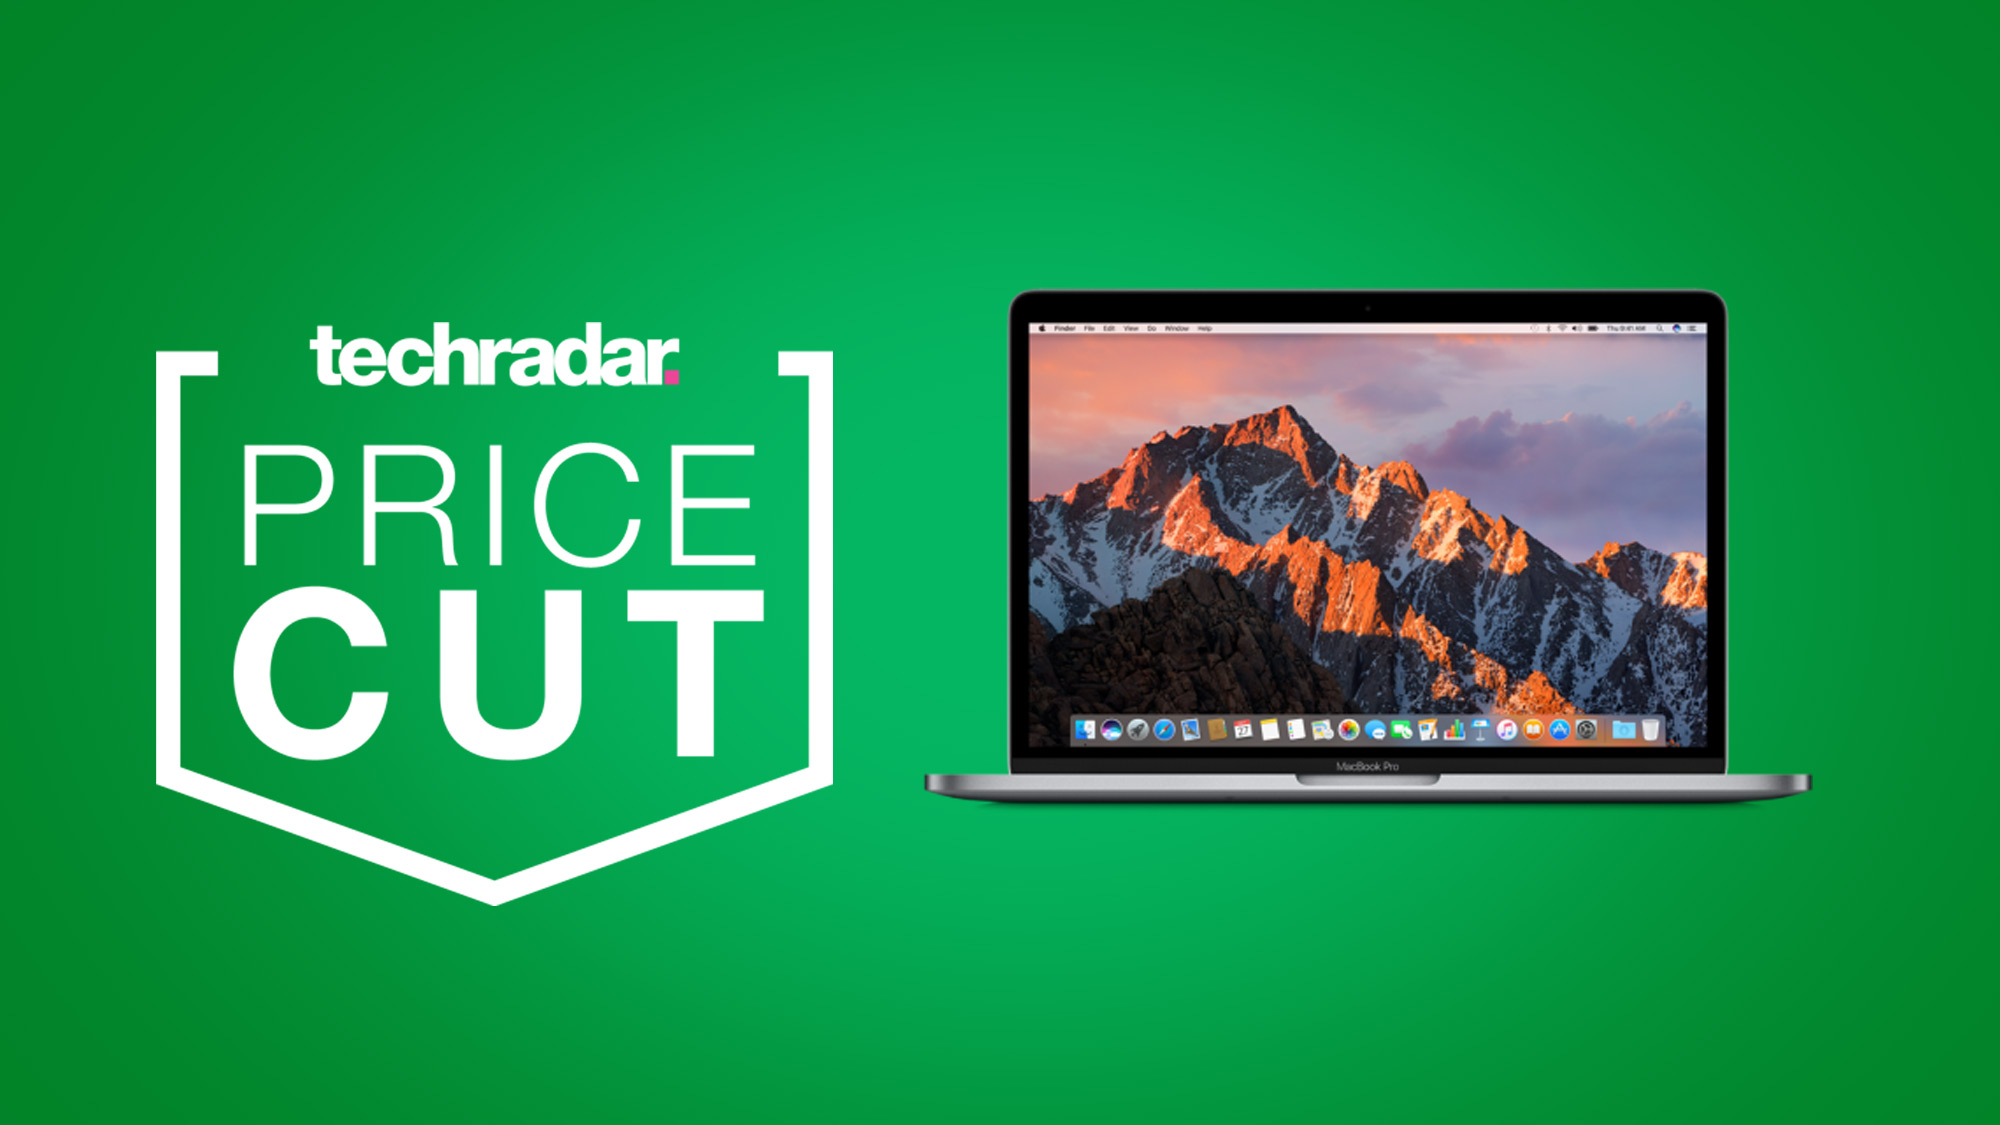 This MacBook Pro deal offers terrific value in the Boxing Day sales